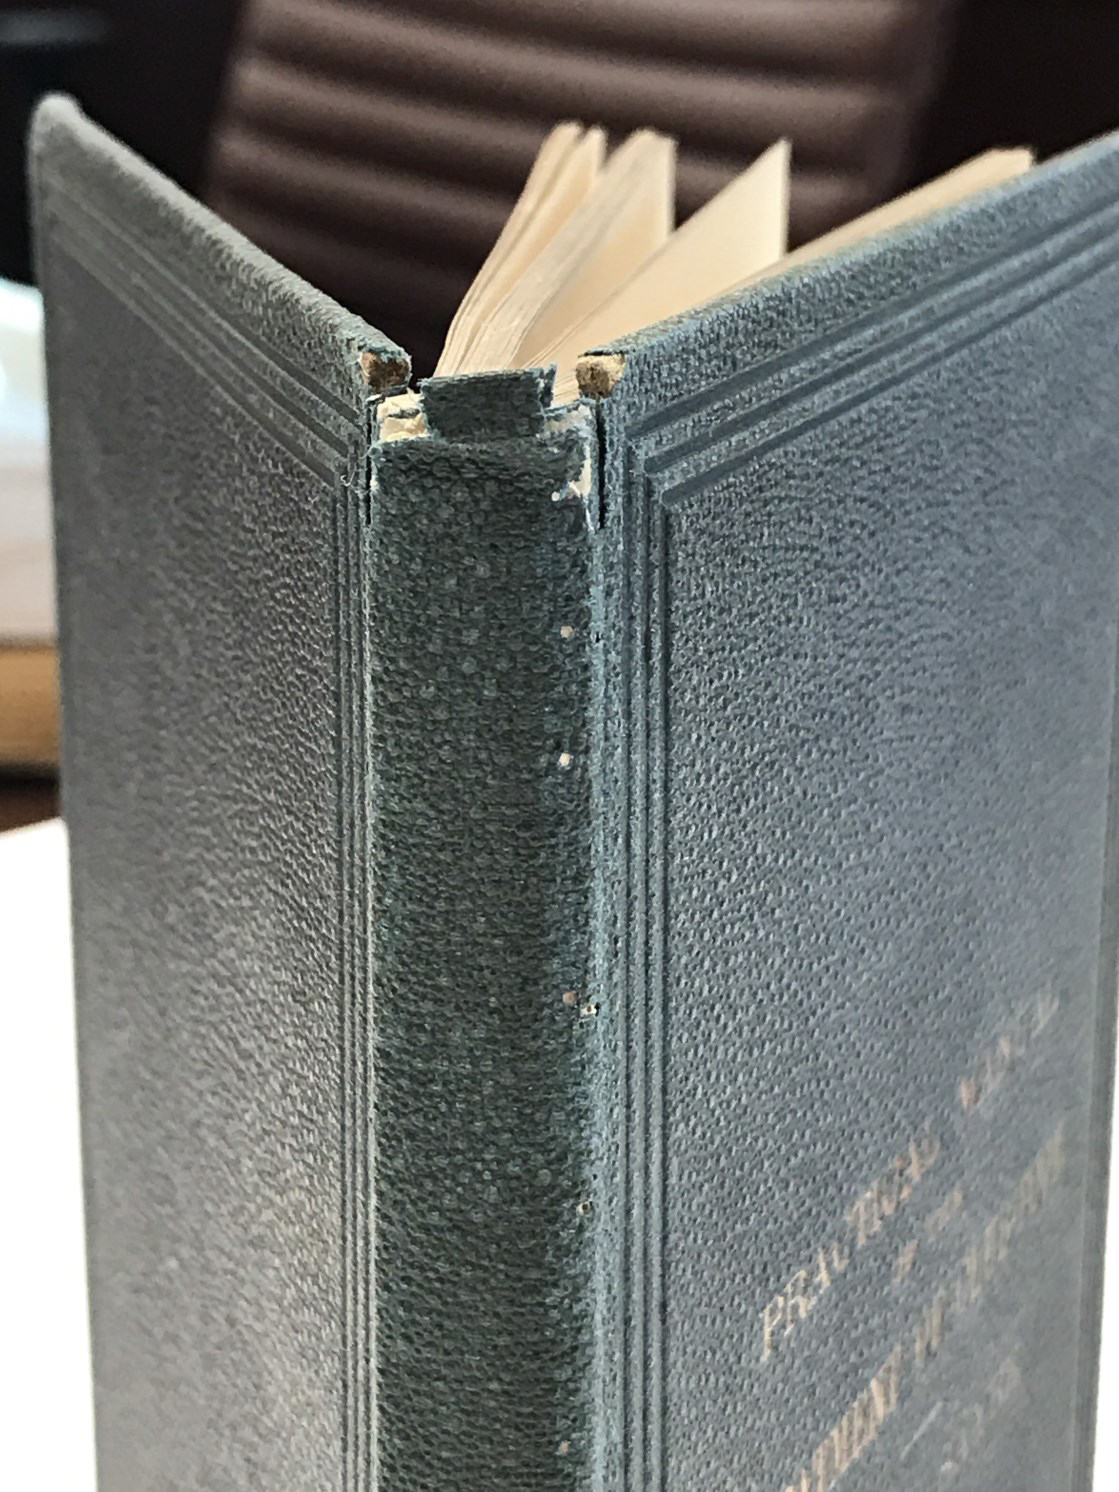 repair needed to book's spine